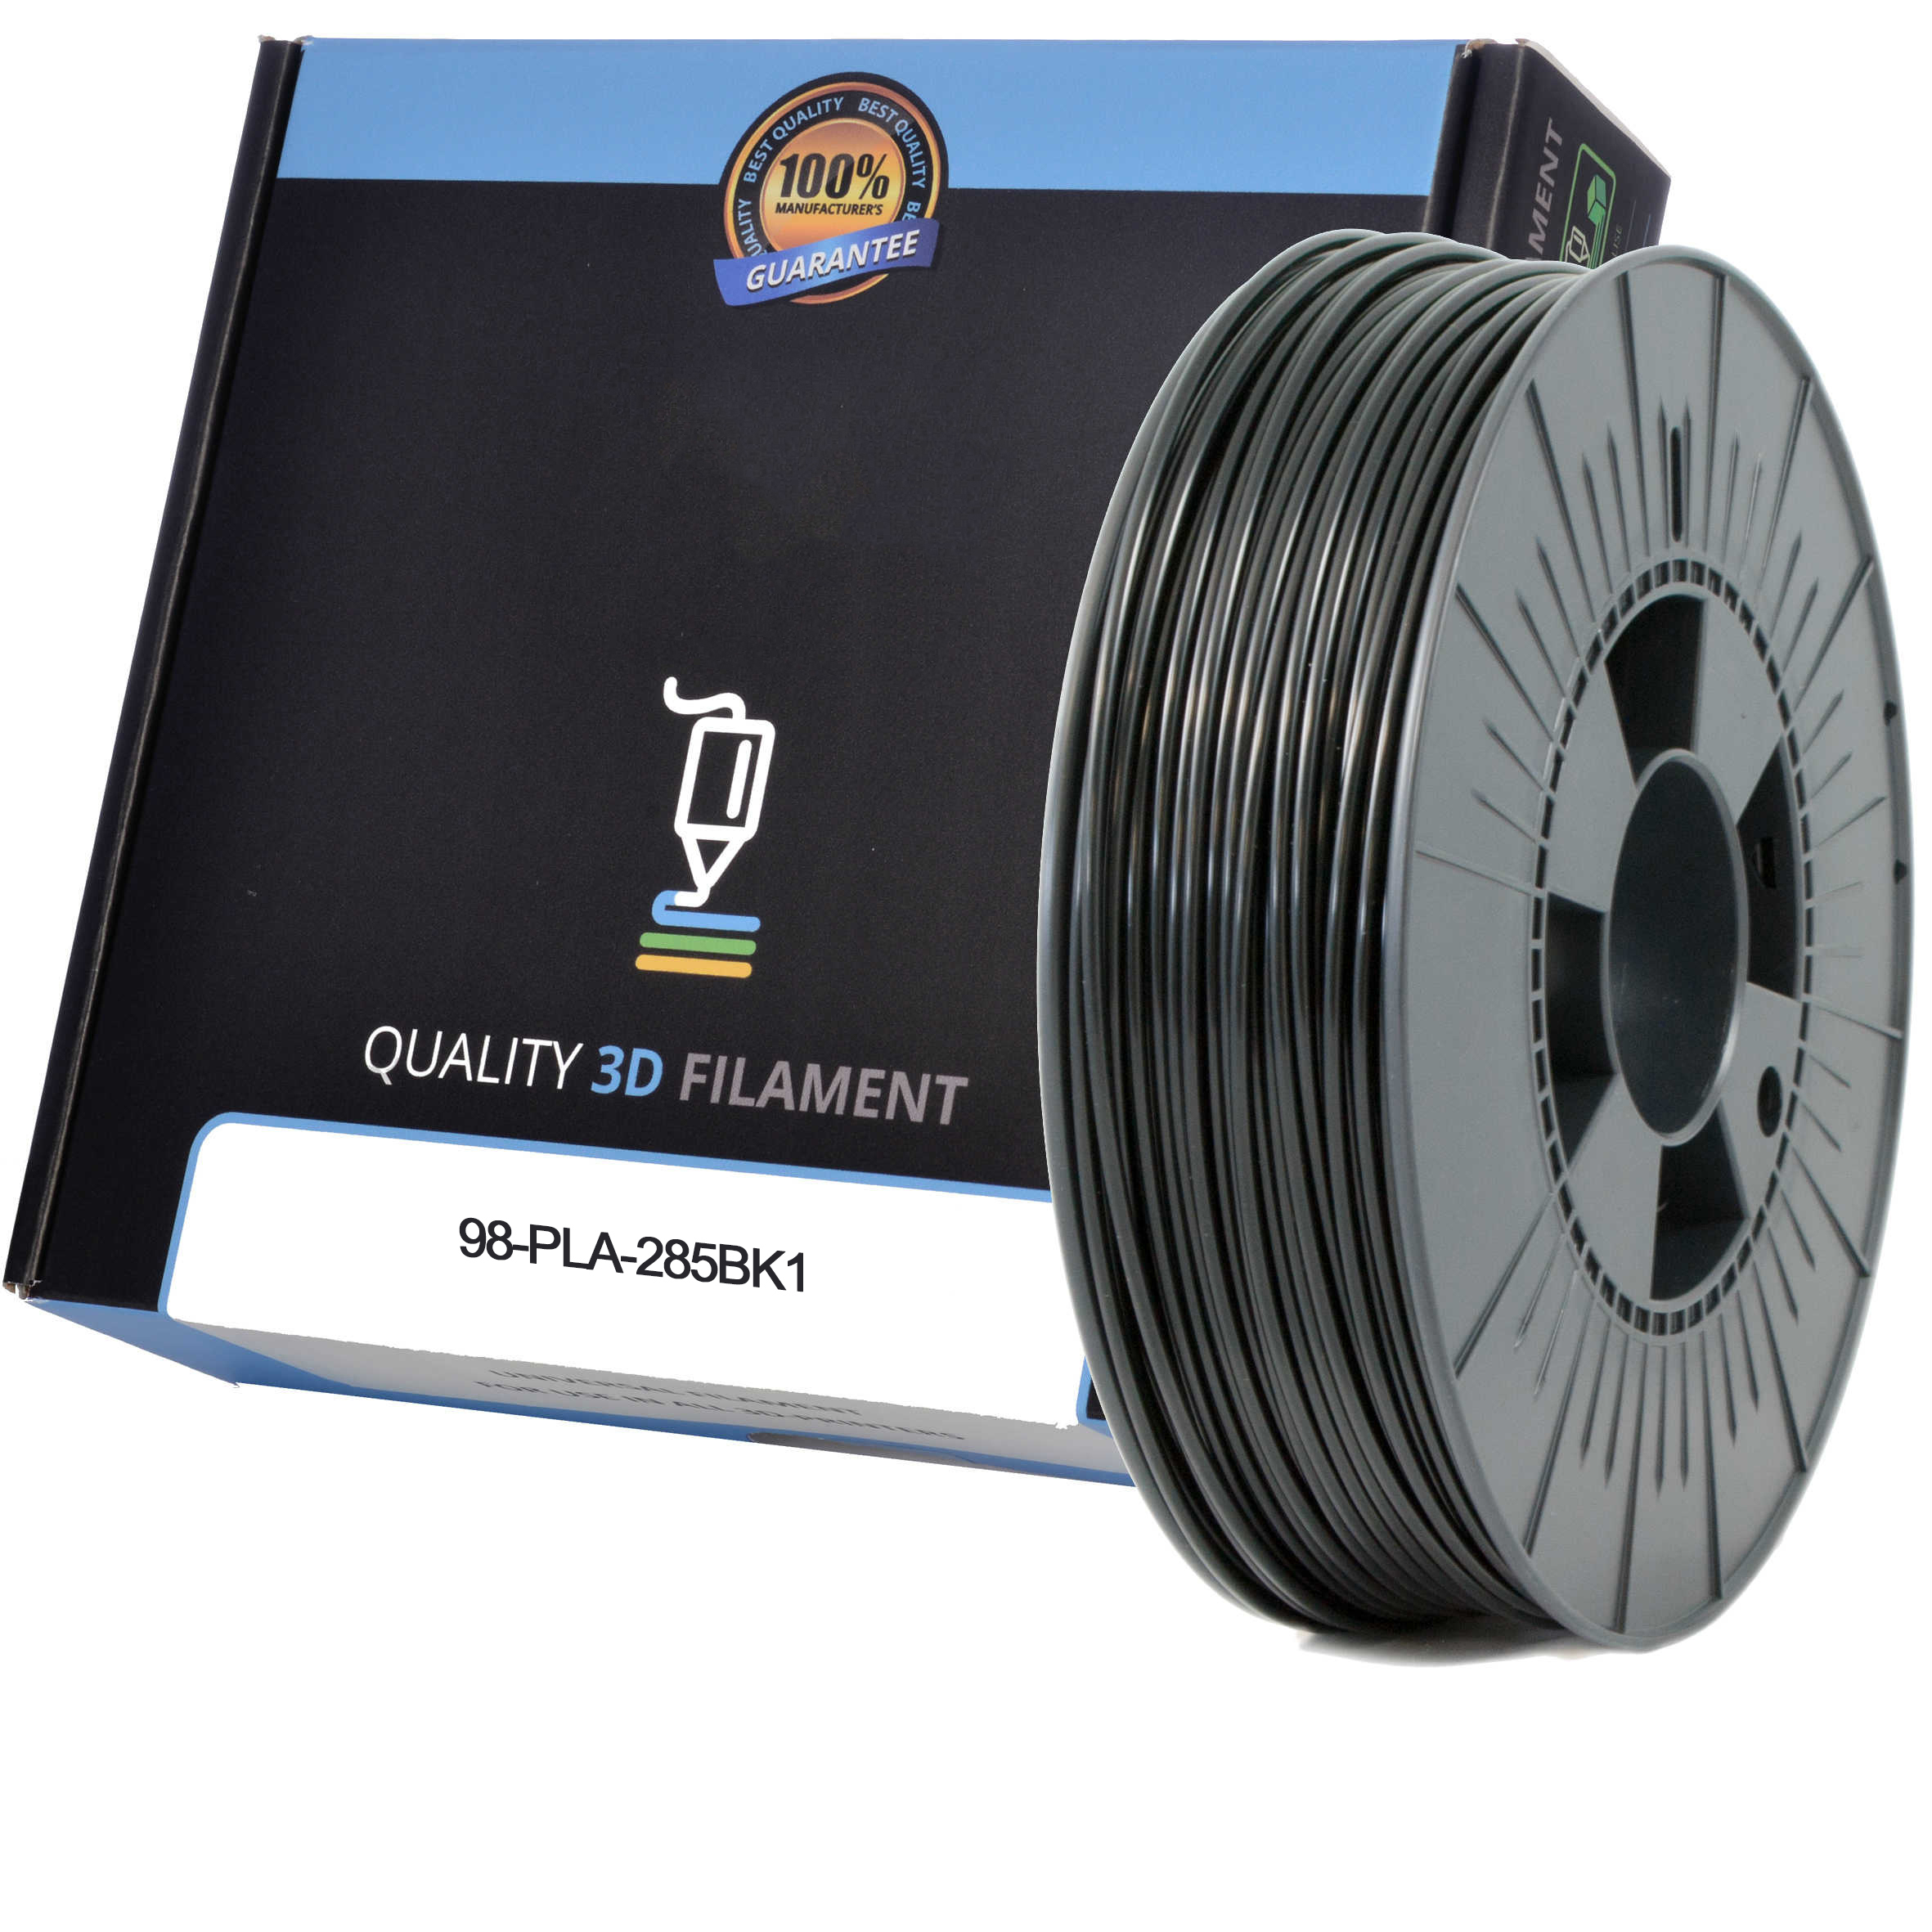 Premium Compatible PLA 2.85mm Black 0.5kg 3D Filament (98-PLA-285BK1)